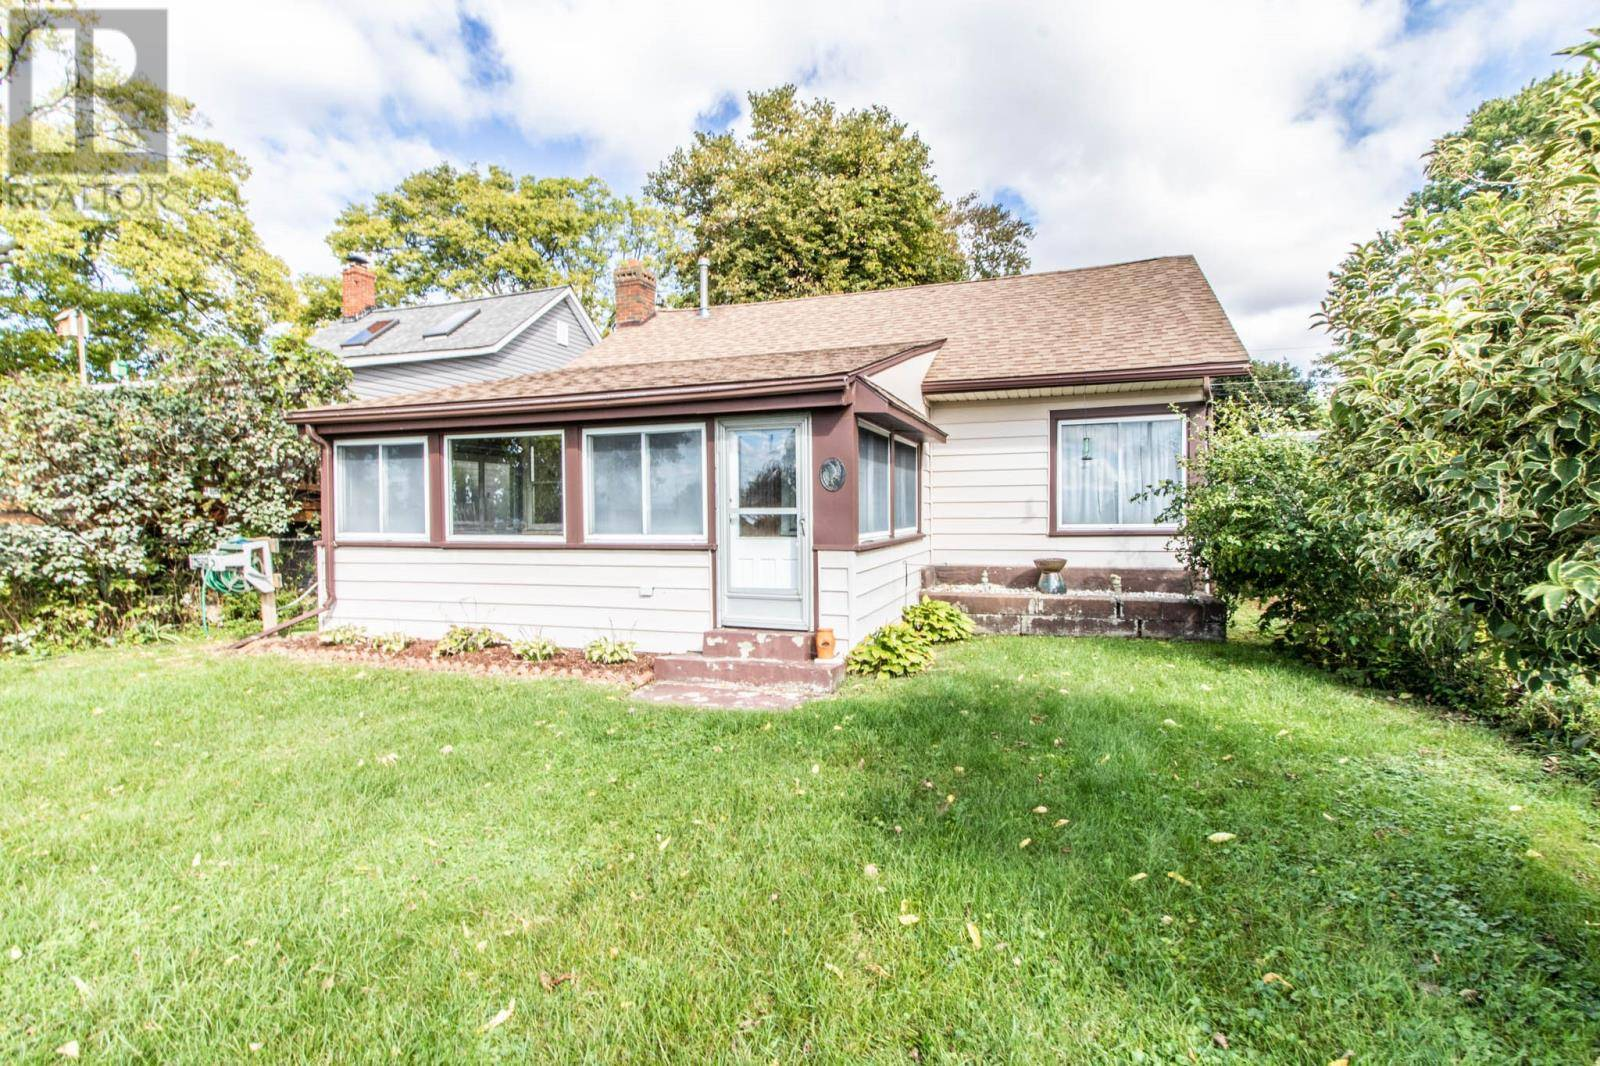 House for sale at 69 Sullivan  Colchester Ontario - MLS: 19026824